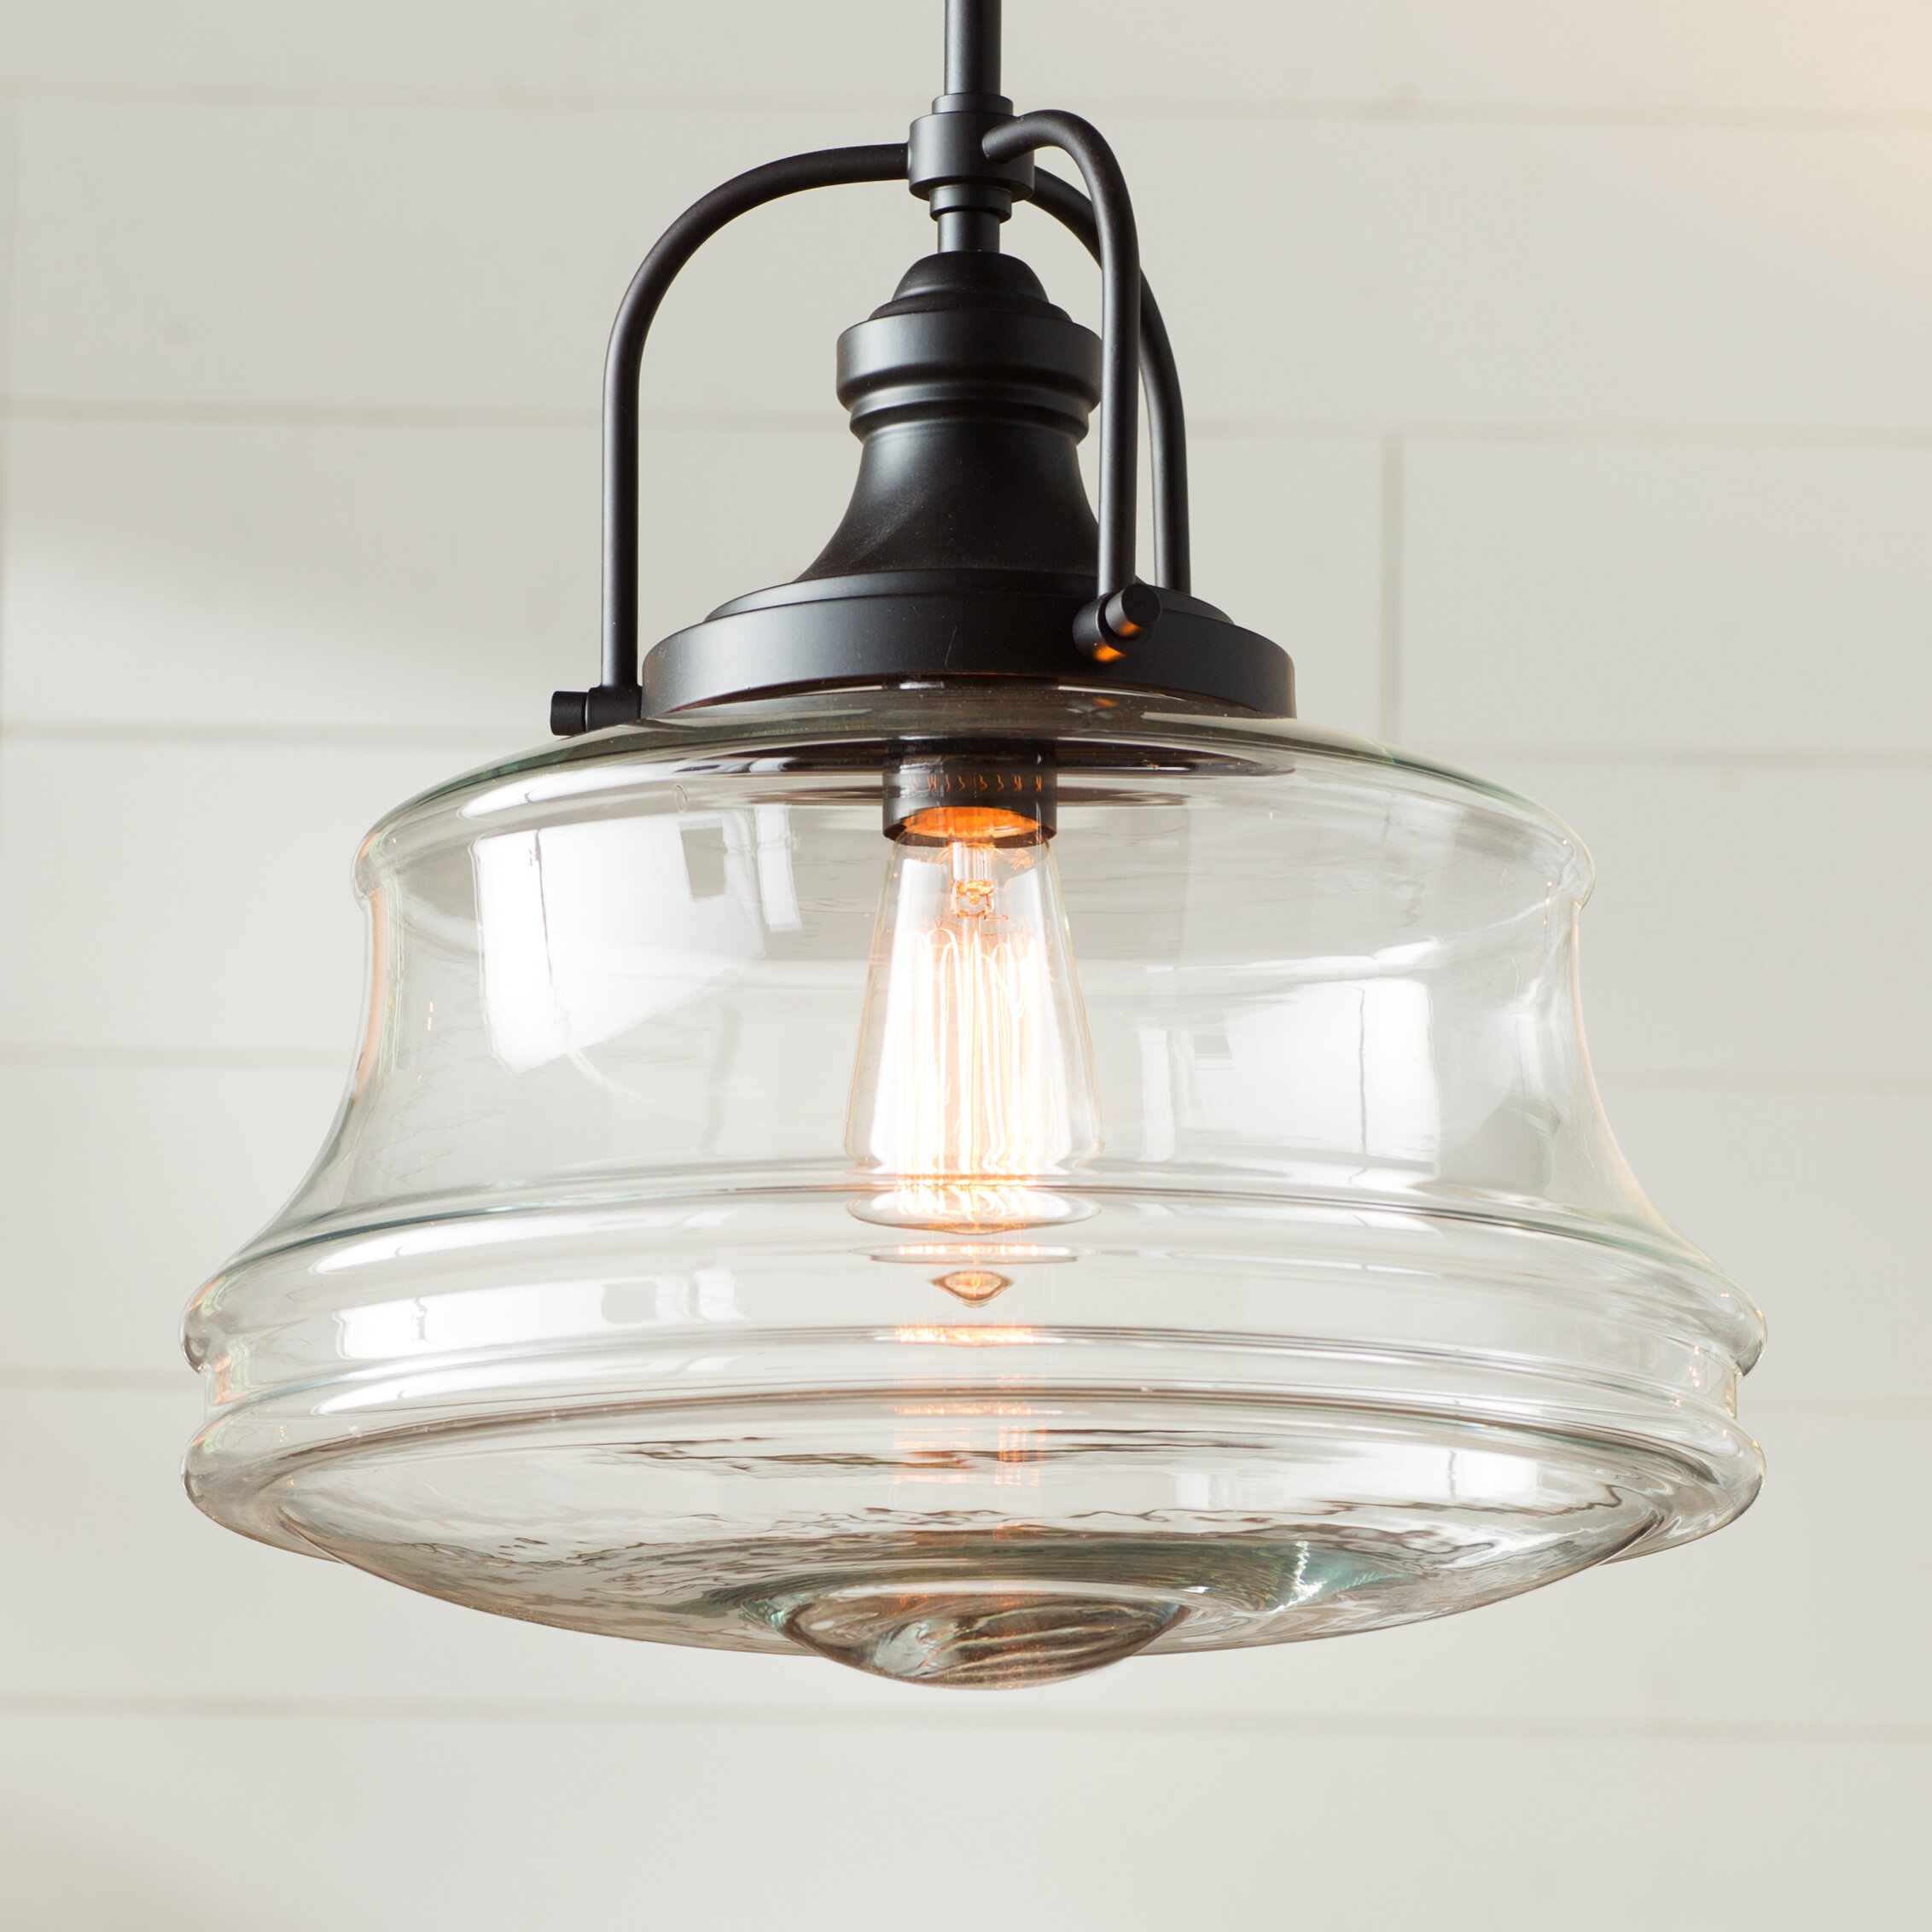 free walnut medium light shipping home today copper turned product schoolhouse grove garden pendant overstock